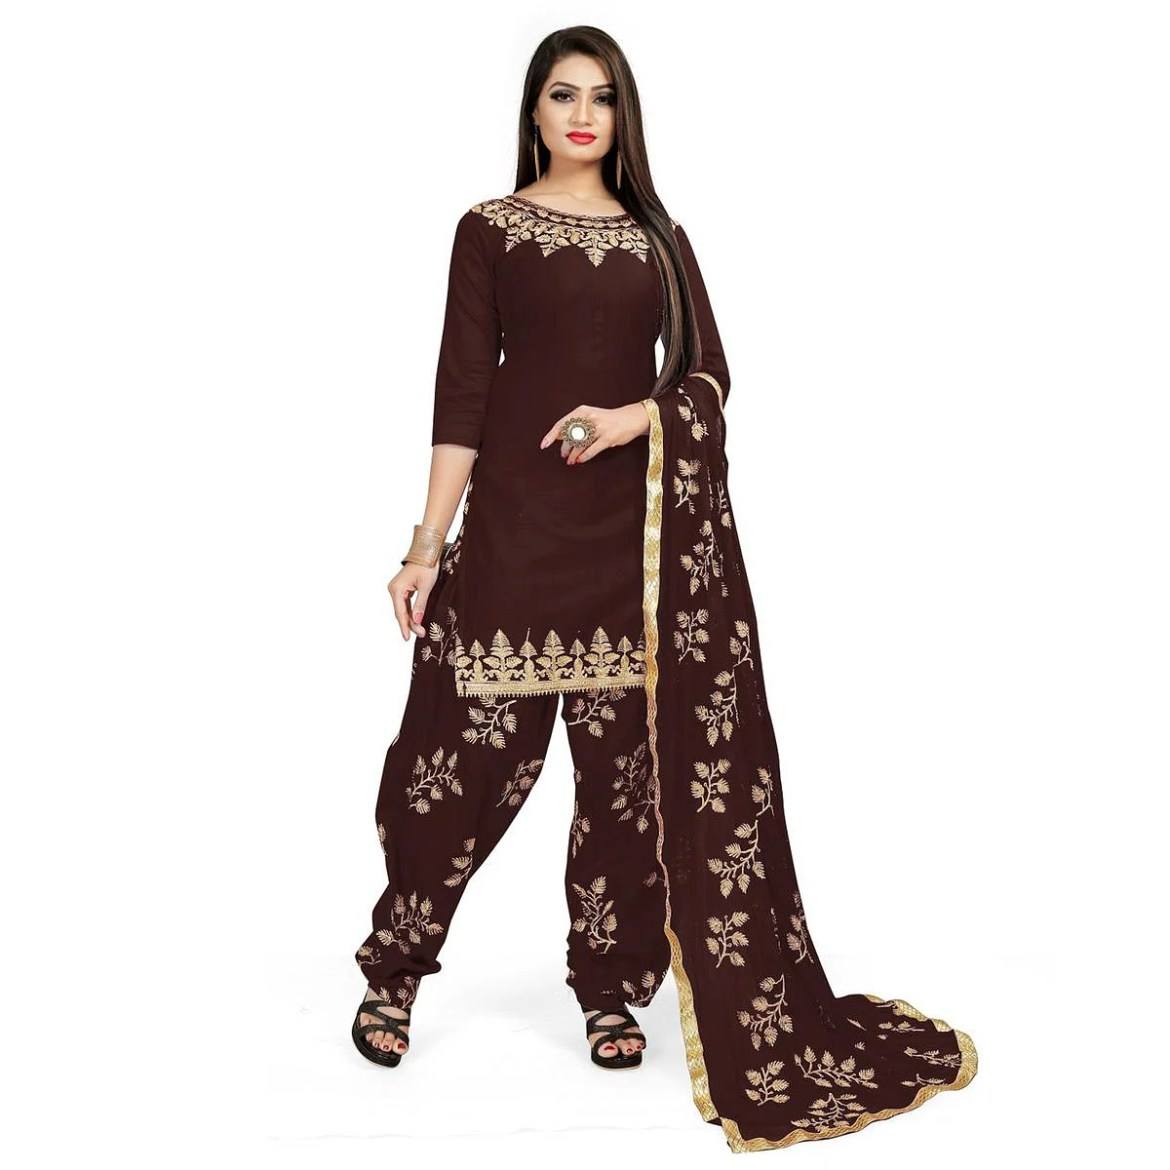 IRIS - Coffee Brown Colored Party Wear Embroidered Cotton Patiyala Style Dress Material